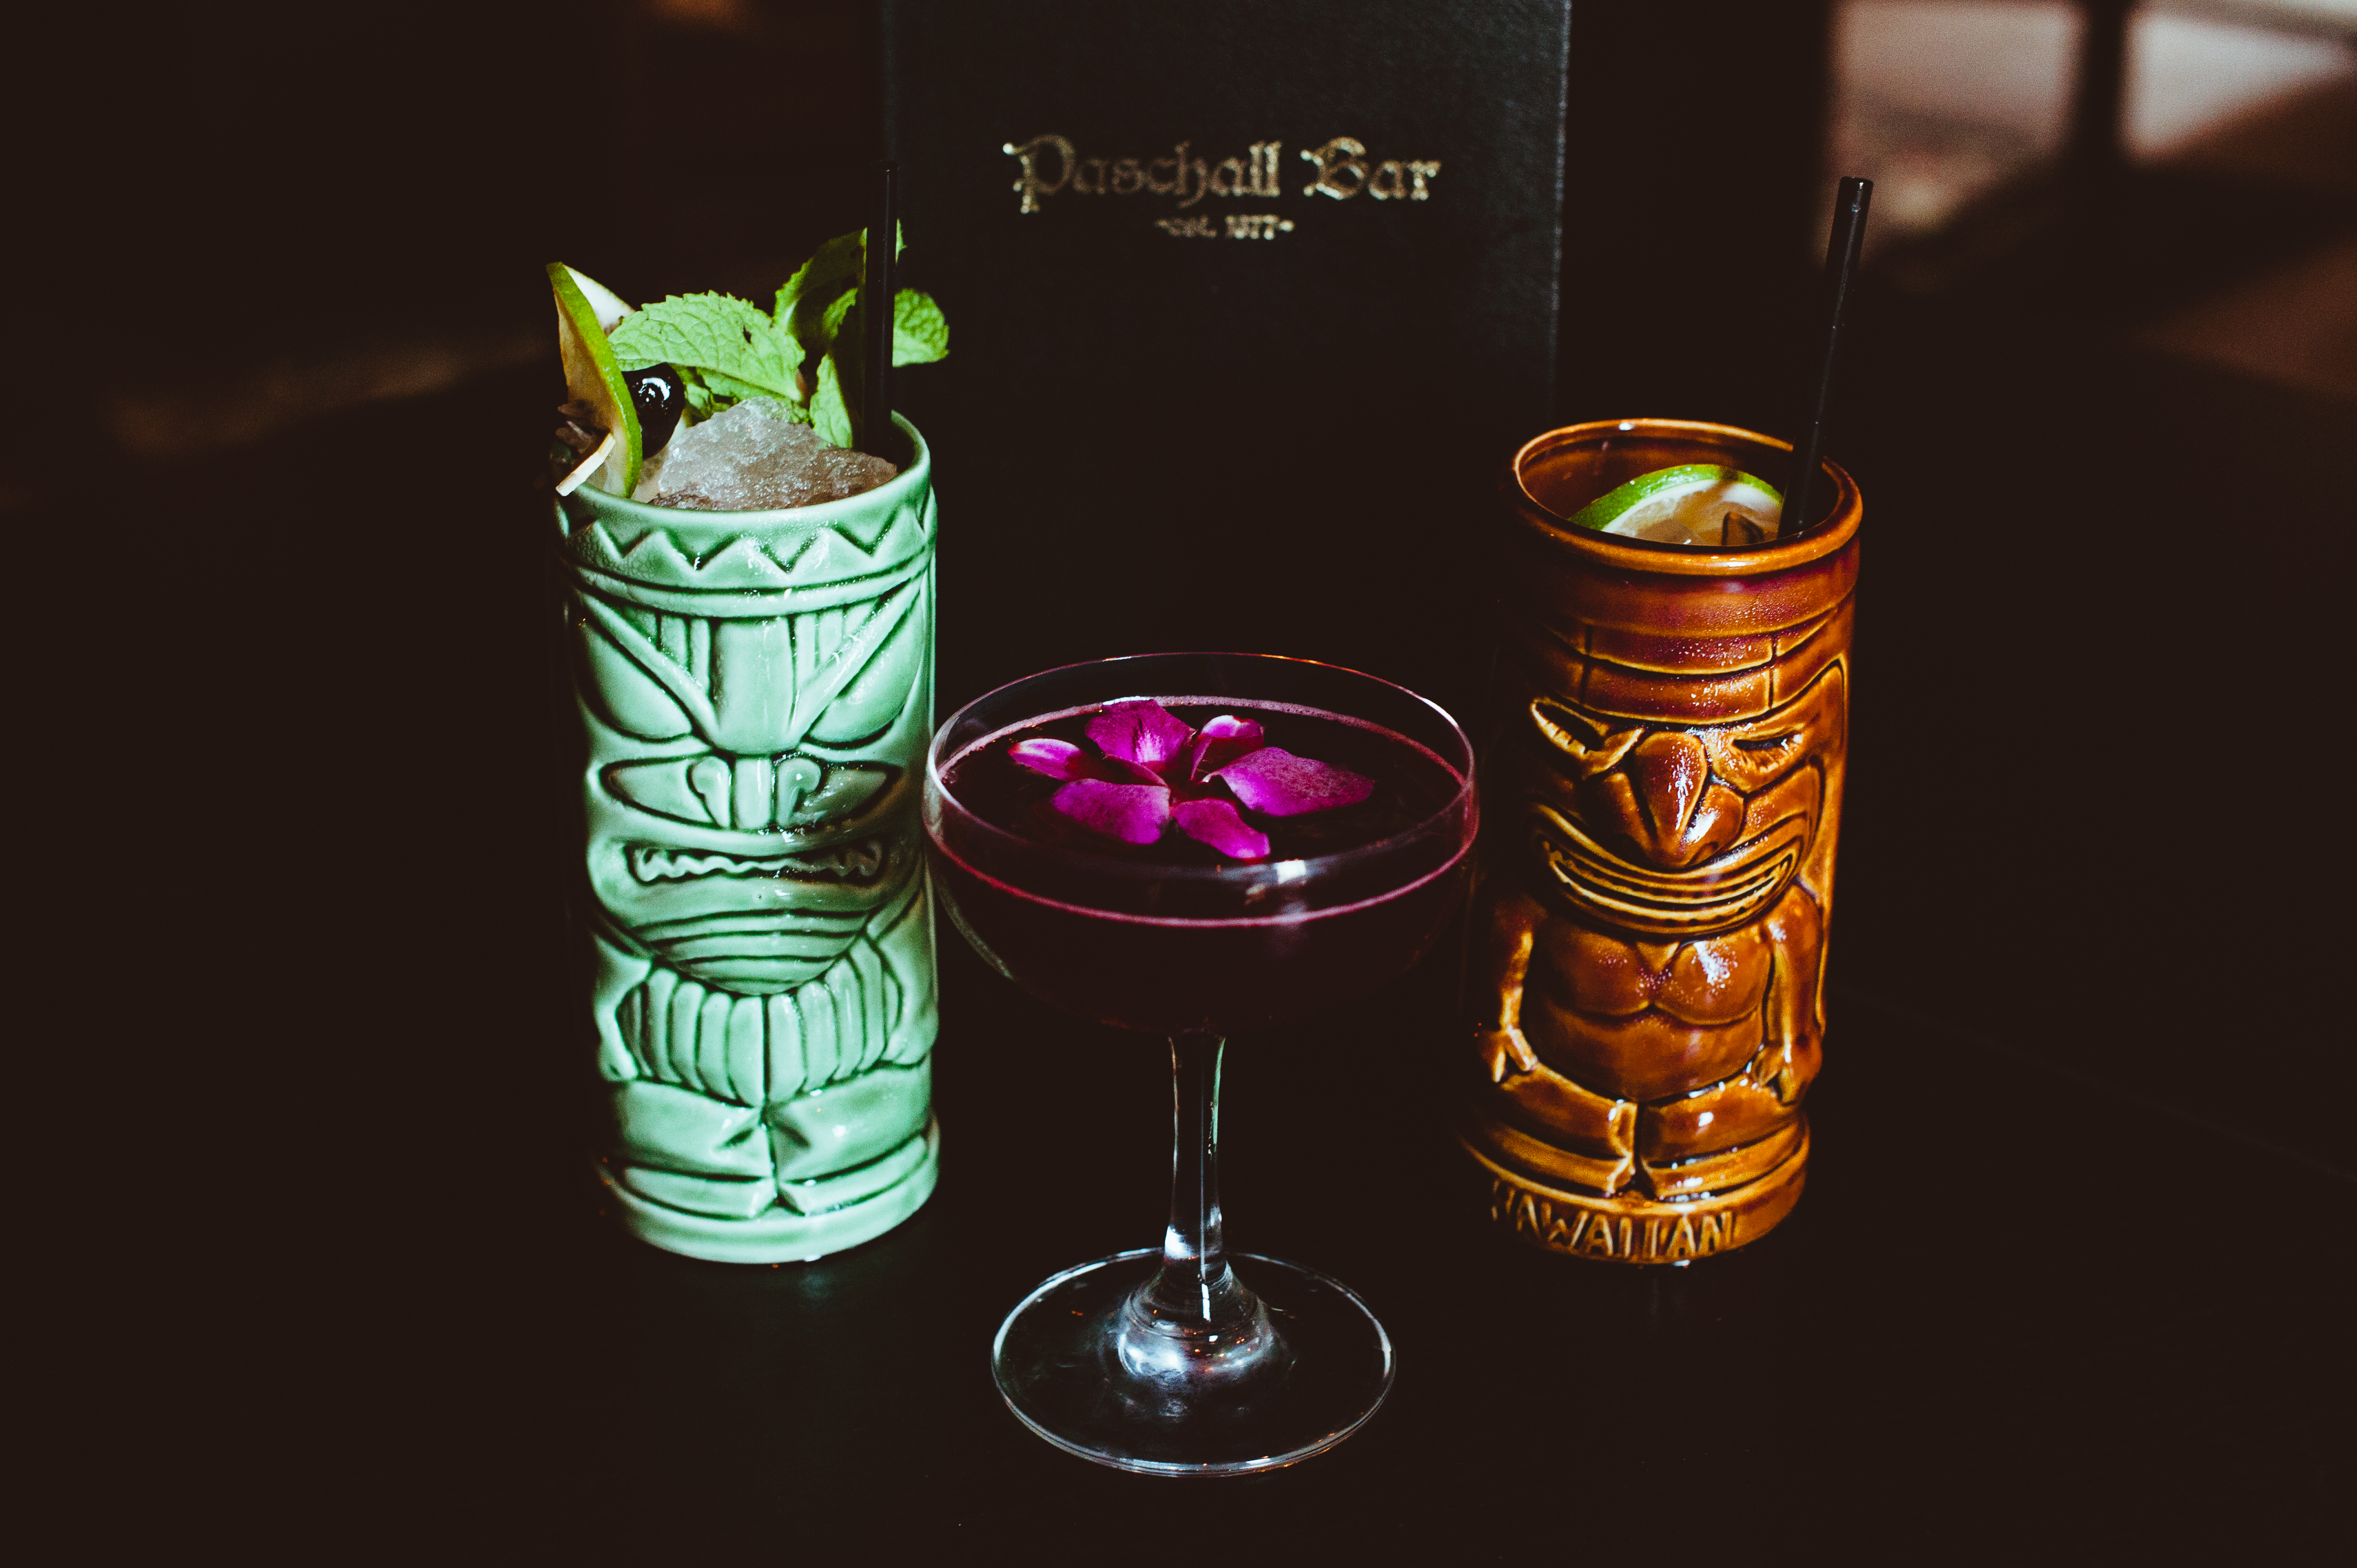 Tiki drinks are both festive and delicious